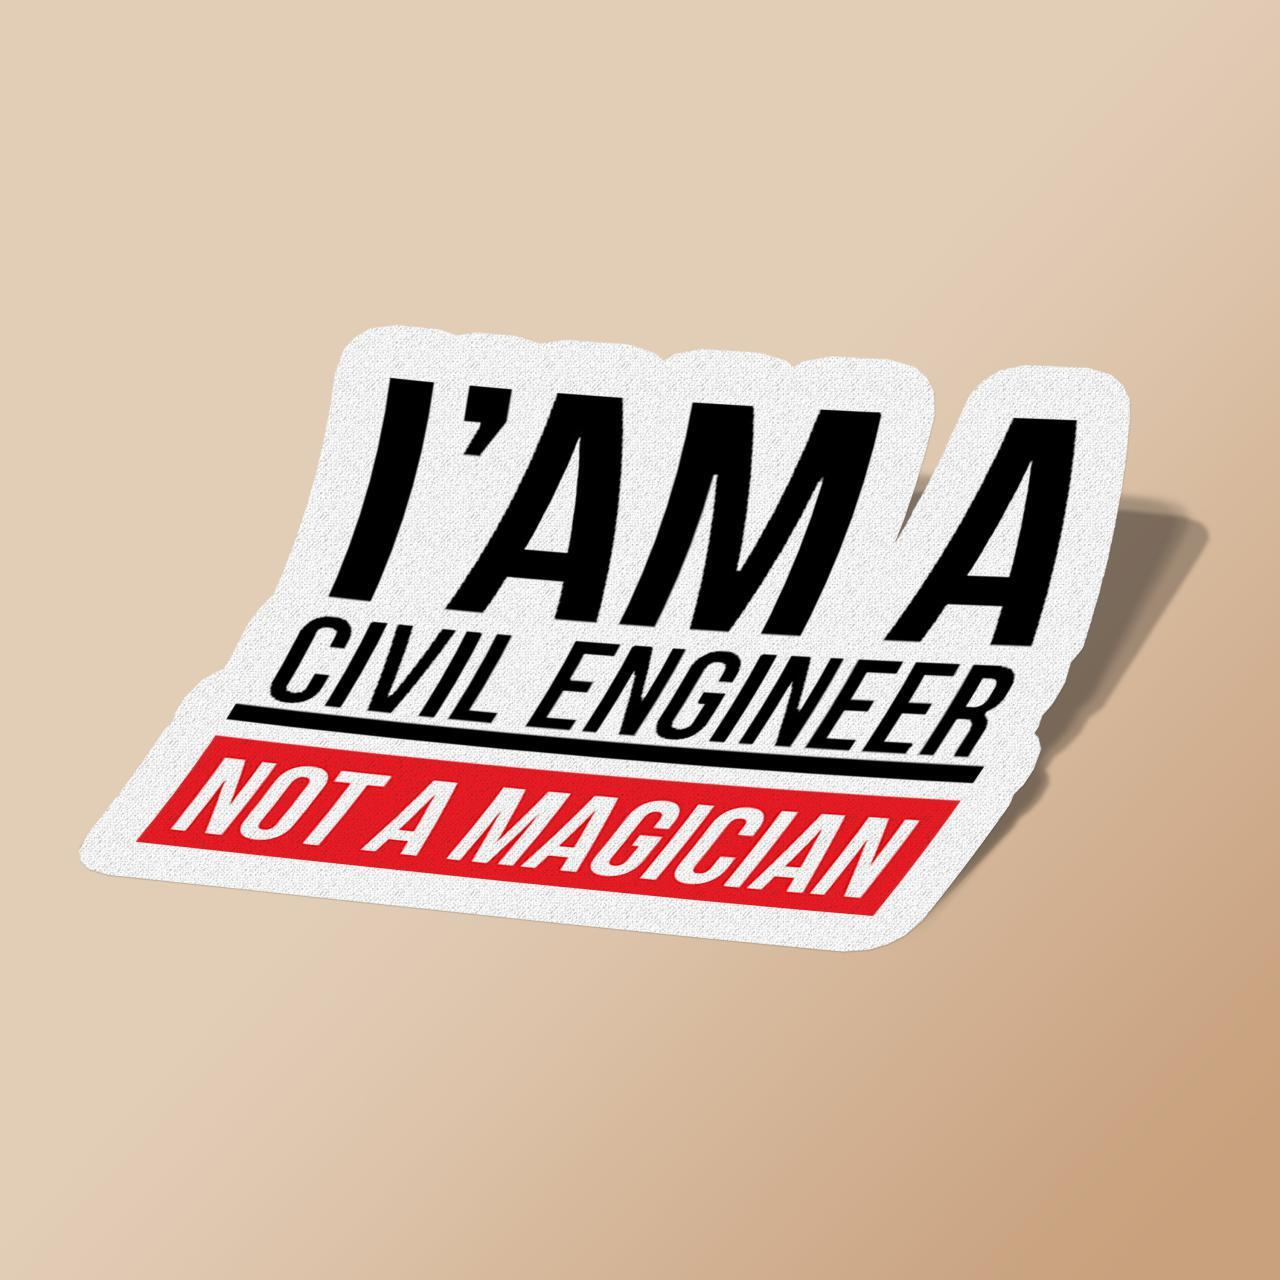 Civil Engineering Not Magician